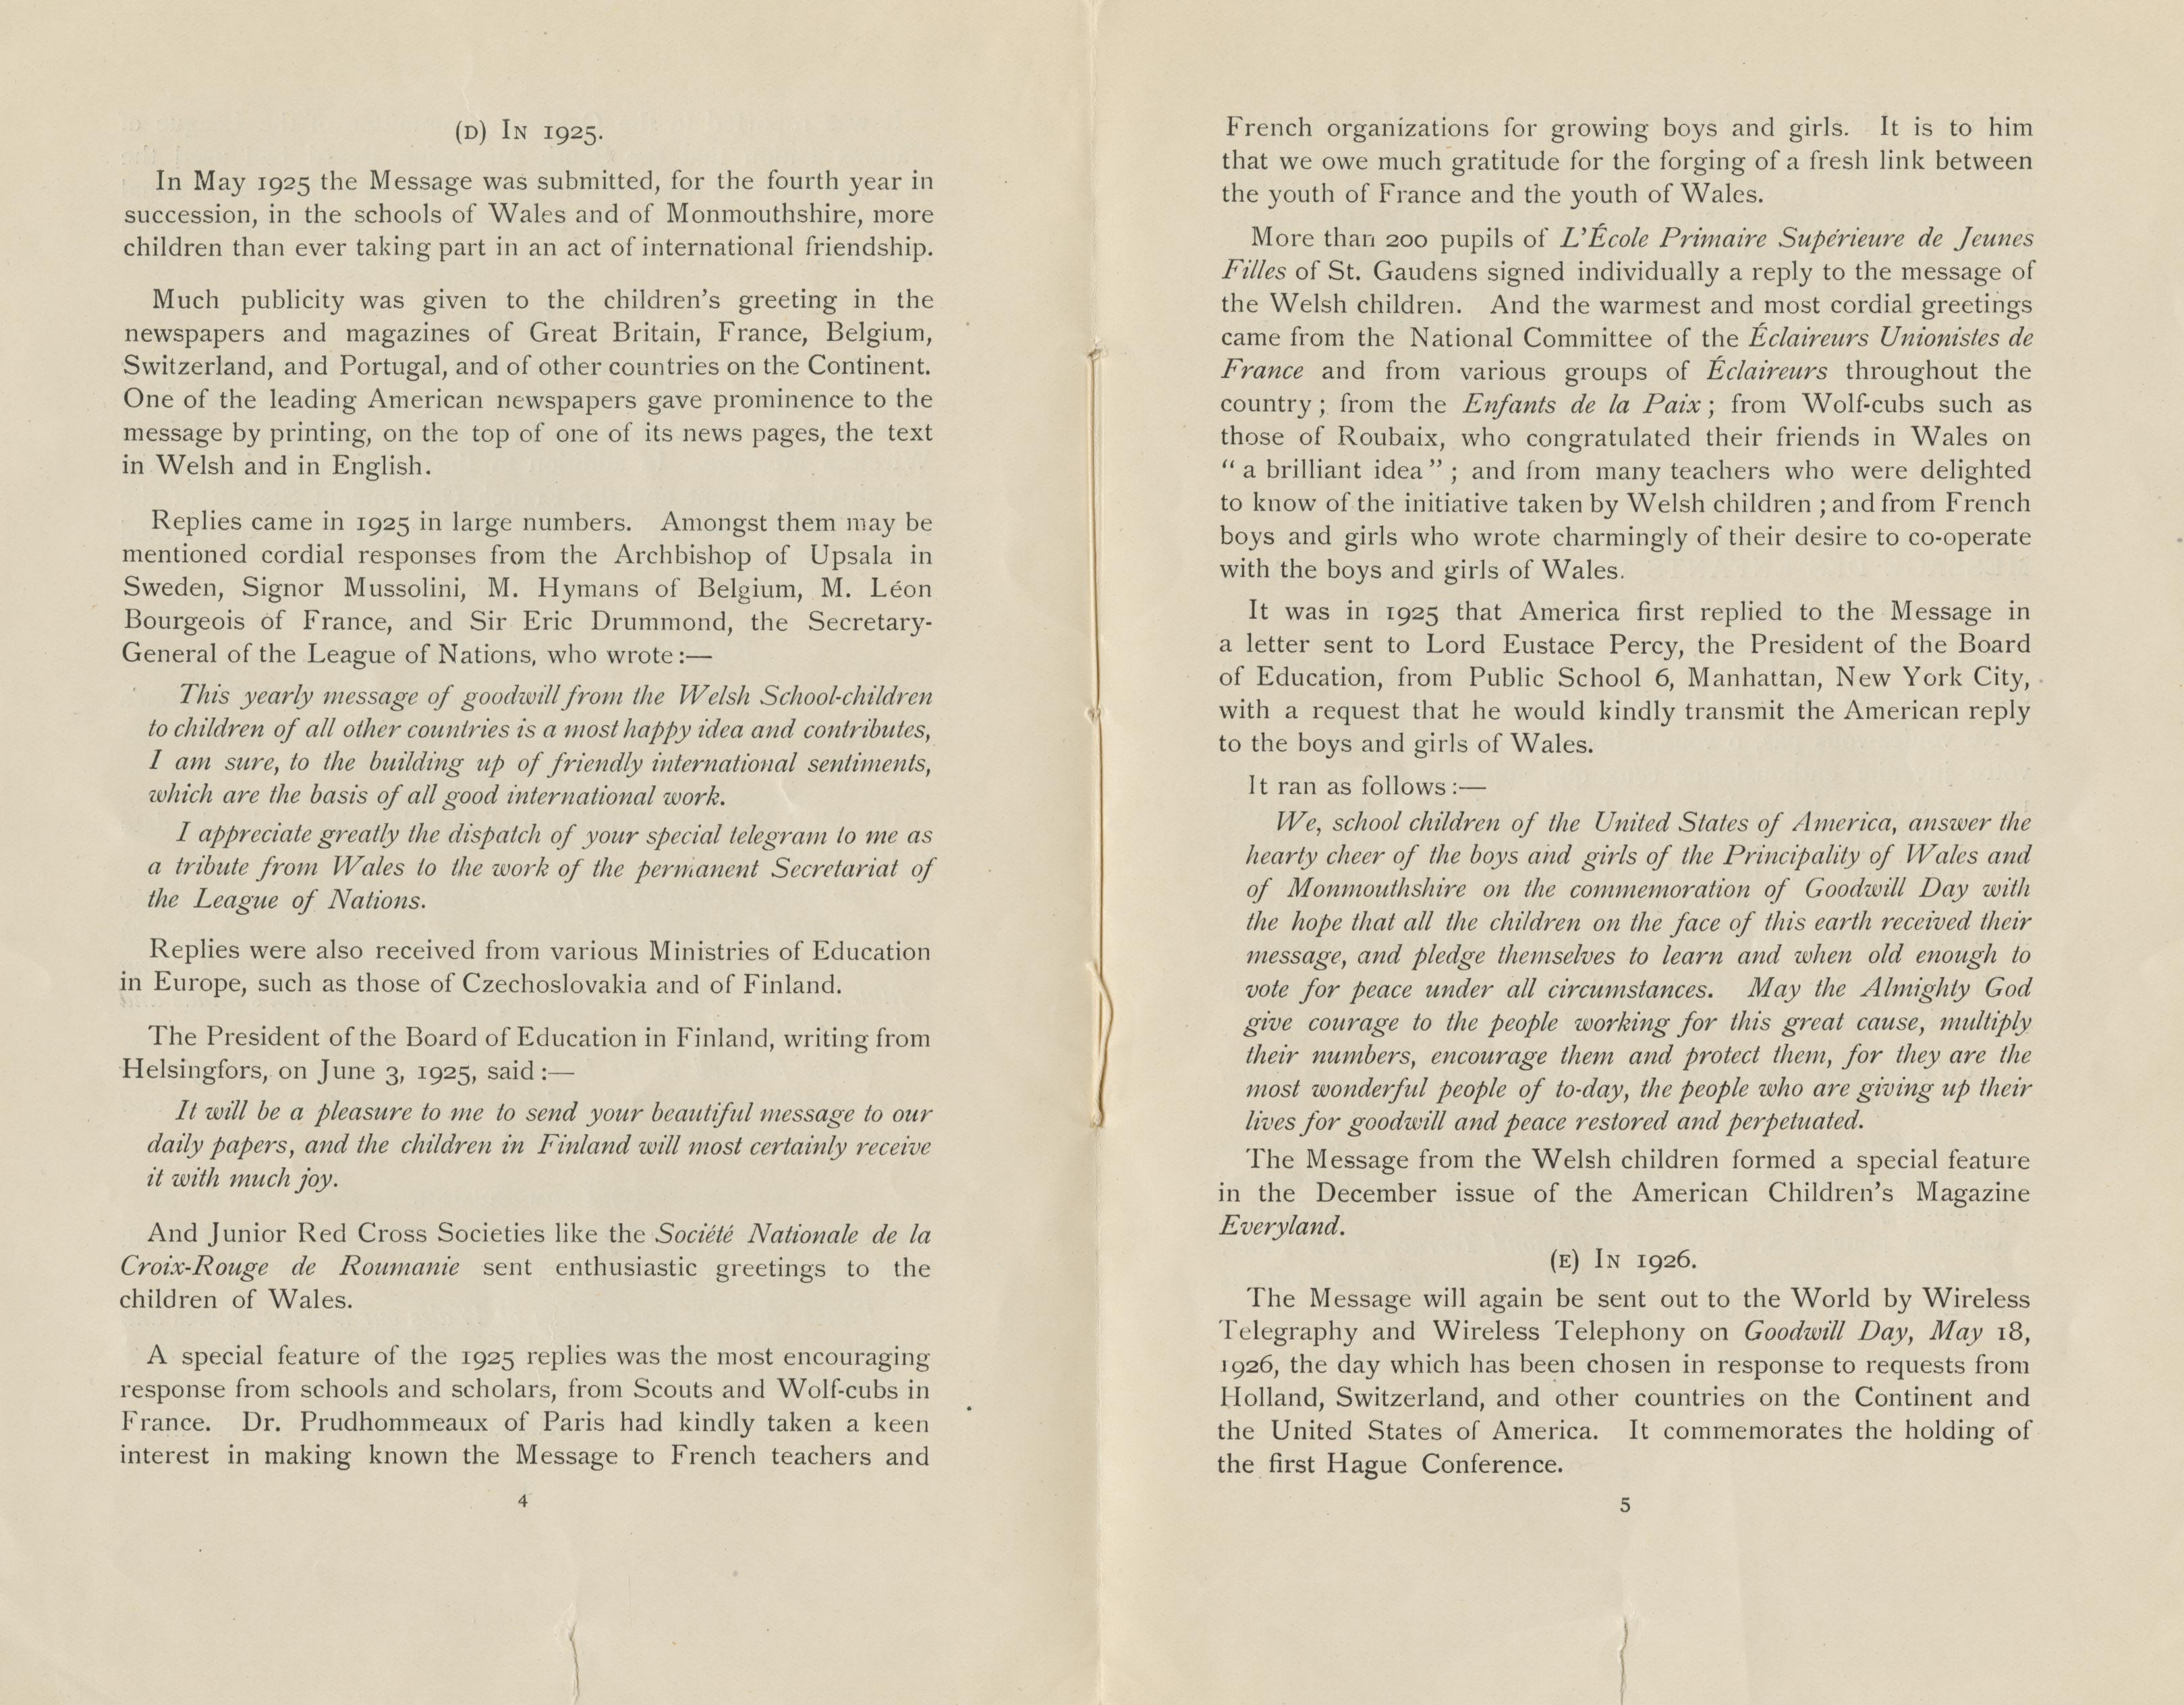 The Message Of Goodwill Of The Children Of Wales 1926